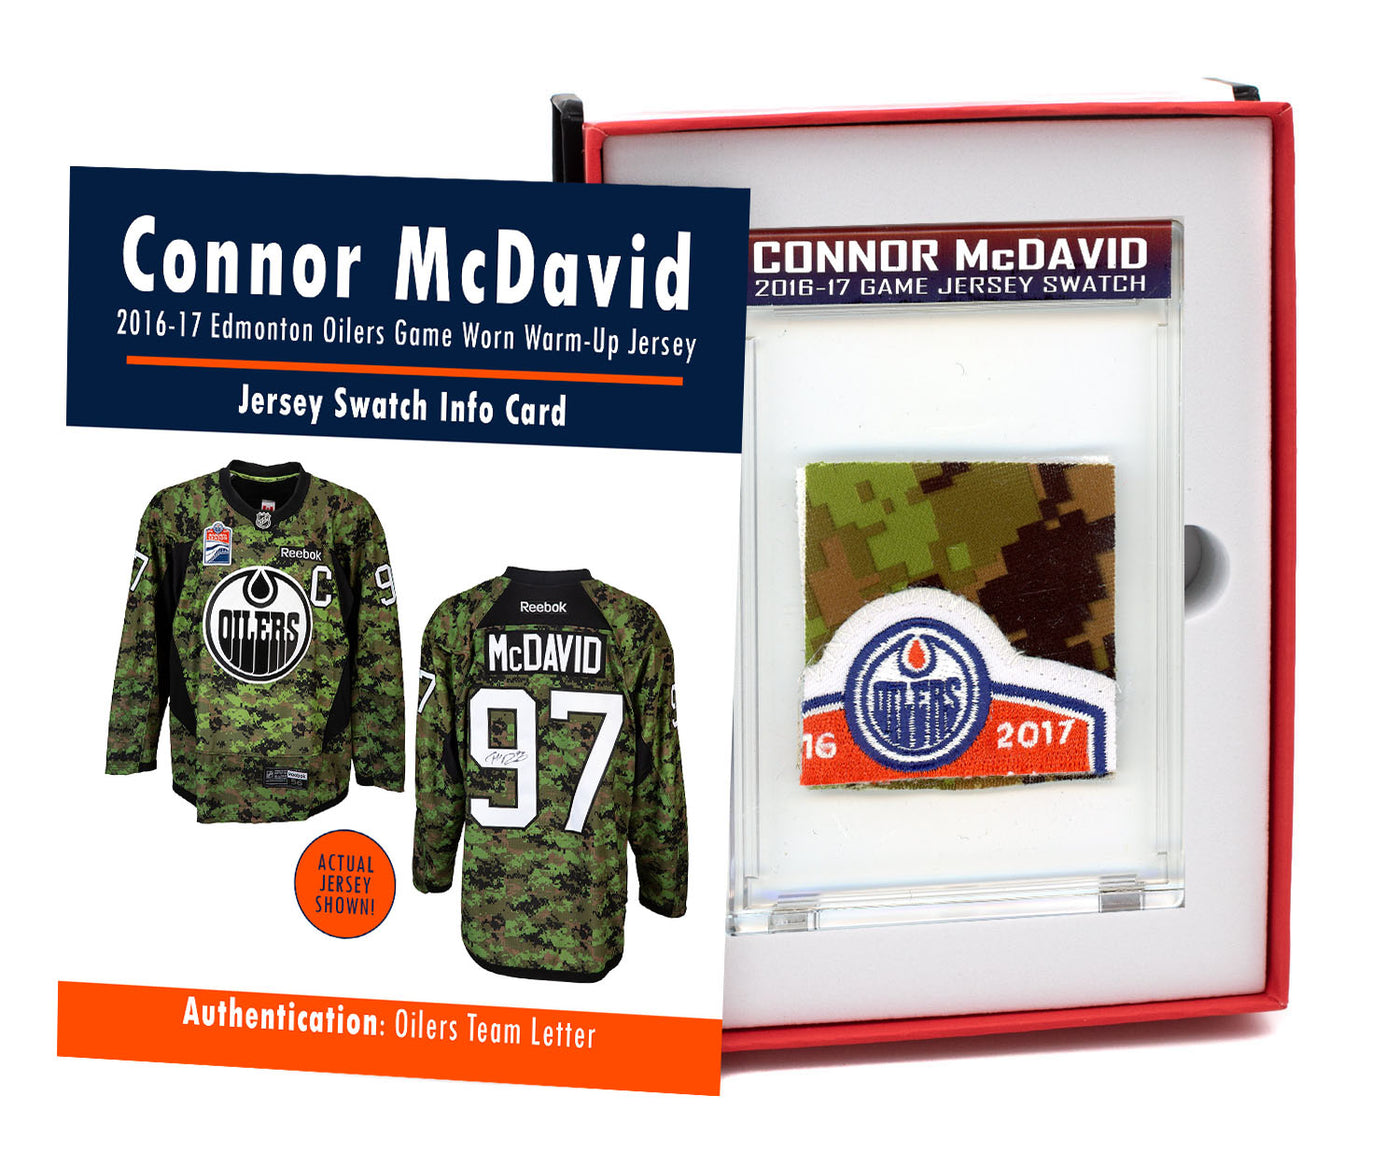 Connor Mcdavid 2016 17 Edmonton Oilers Game Worn Jersey Mystery Swatch Sportscards Com